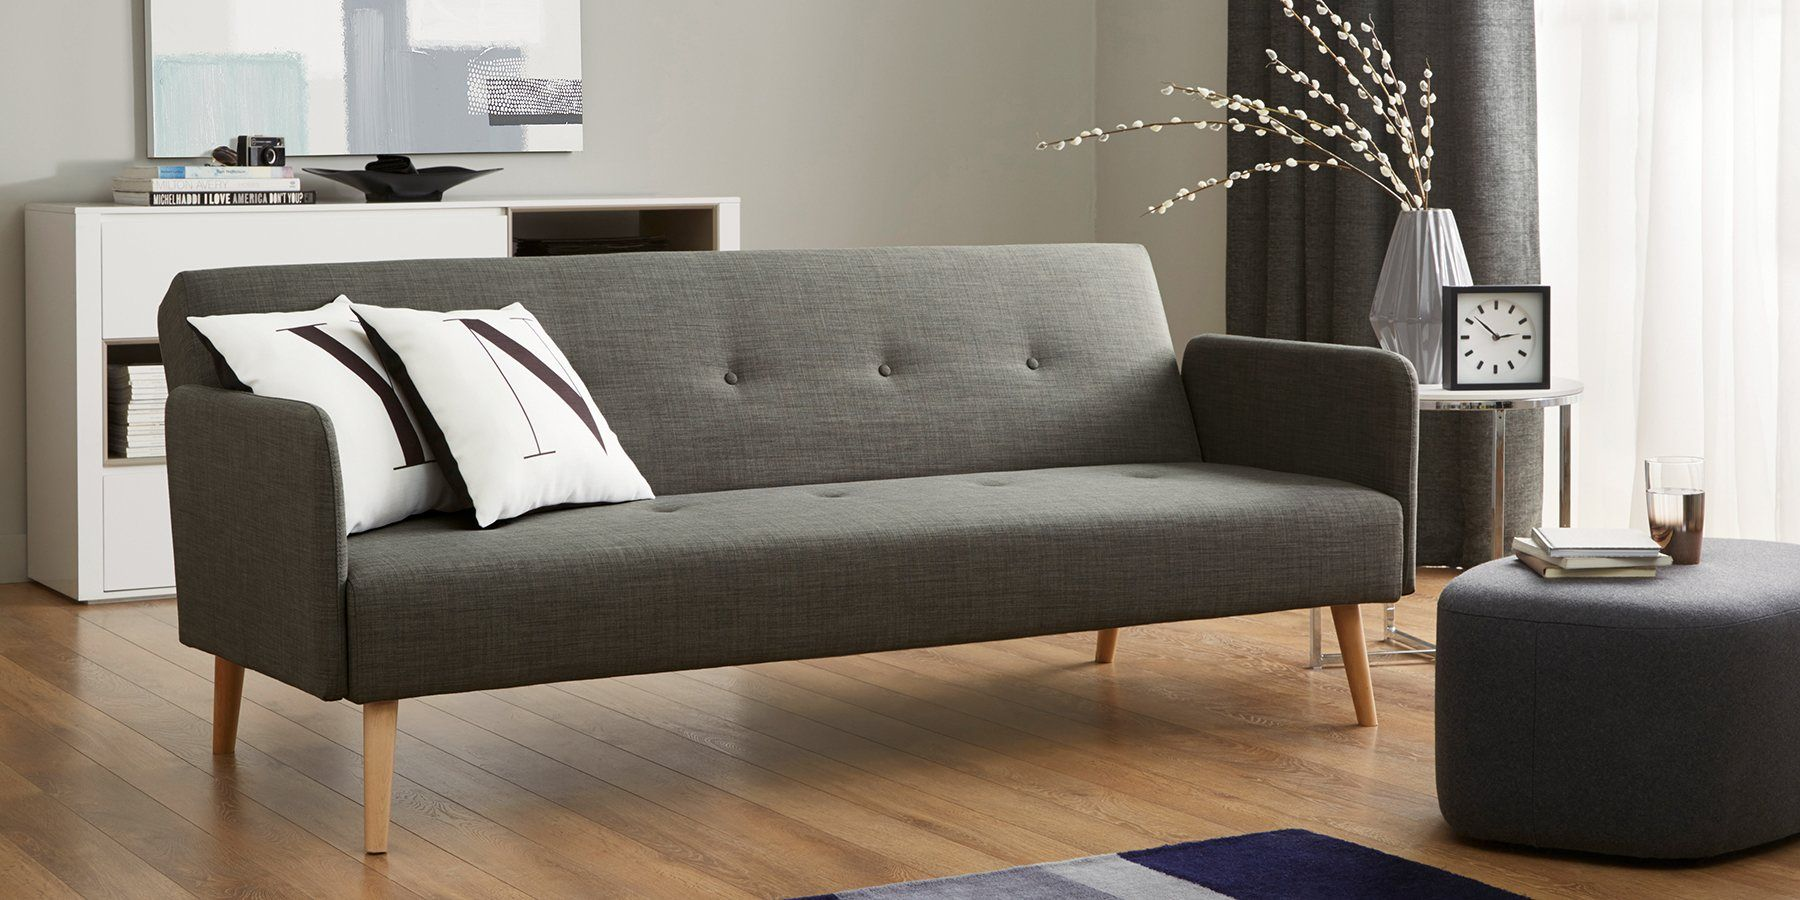 Habitat Rupert Sofa Review Buy Finnley Occasional Sofa Bed Medium 2 People Simple